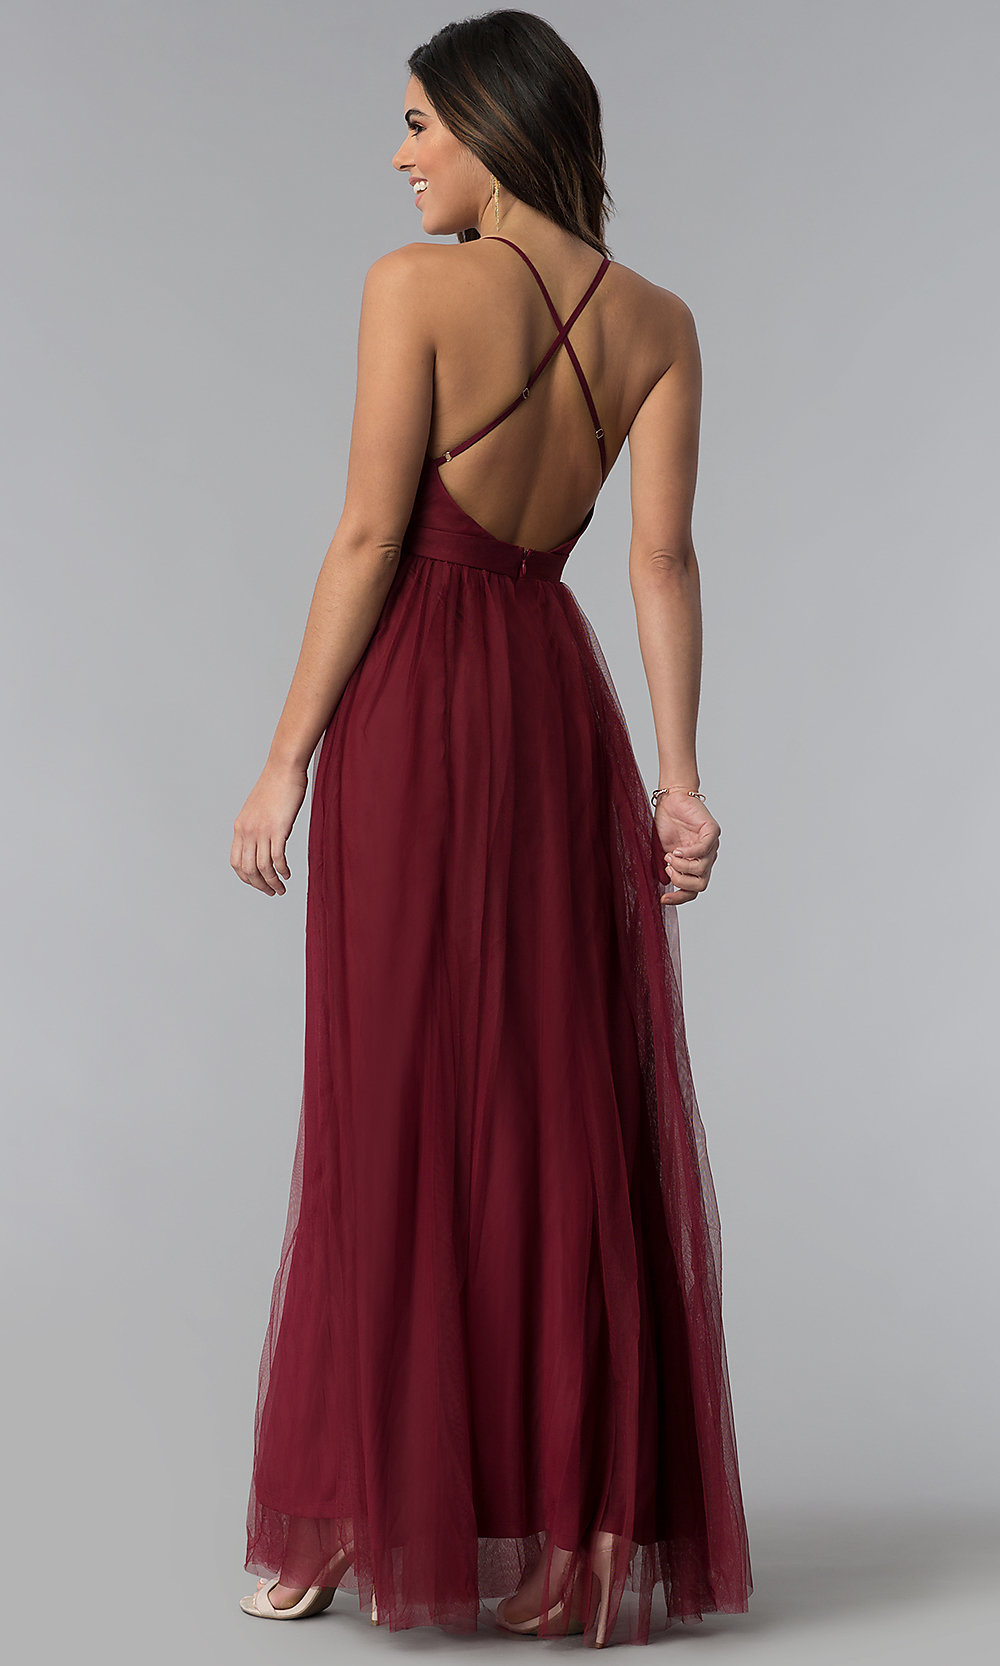 sexy prom dress with deep vneckline  promgirl